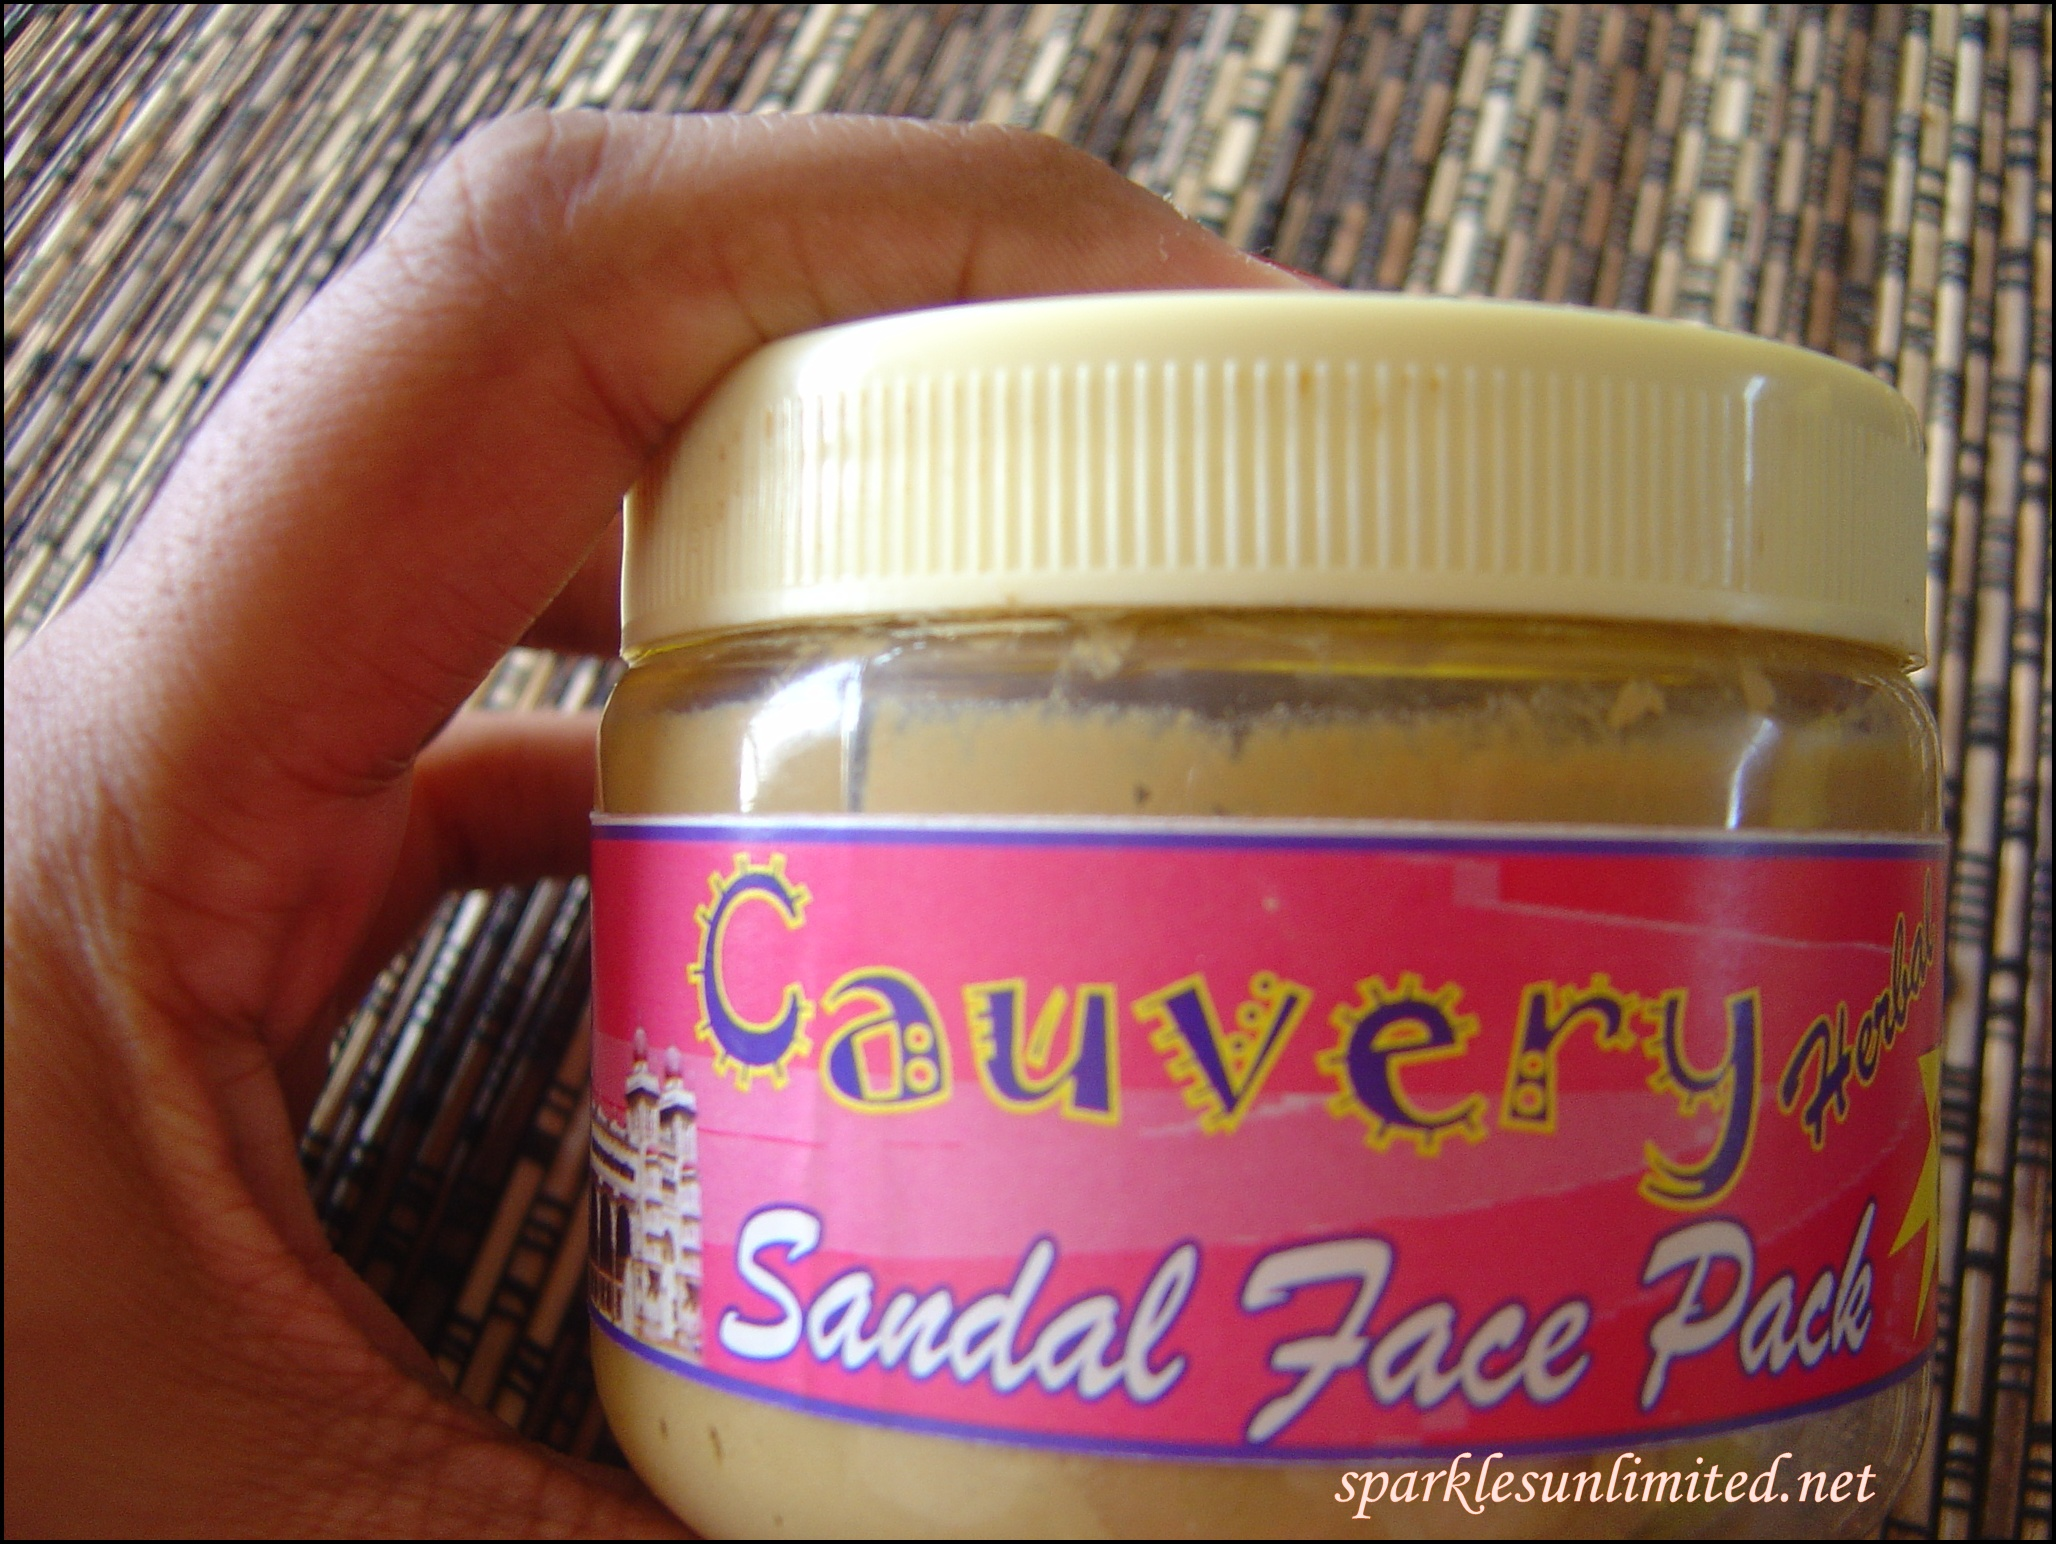 Cauvery Herbal Sandal Face Pack Review Sparkles Unlimited